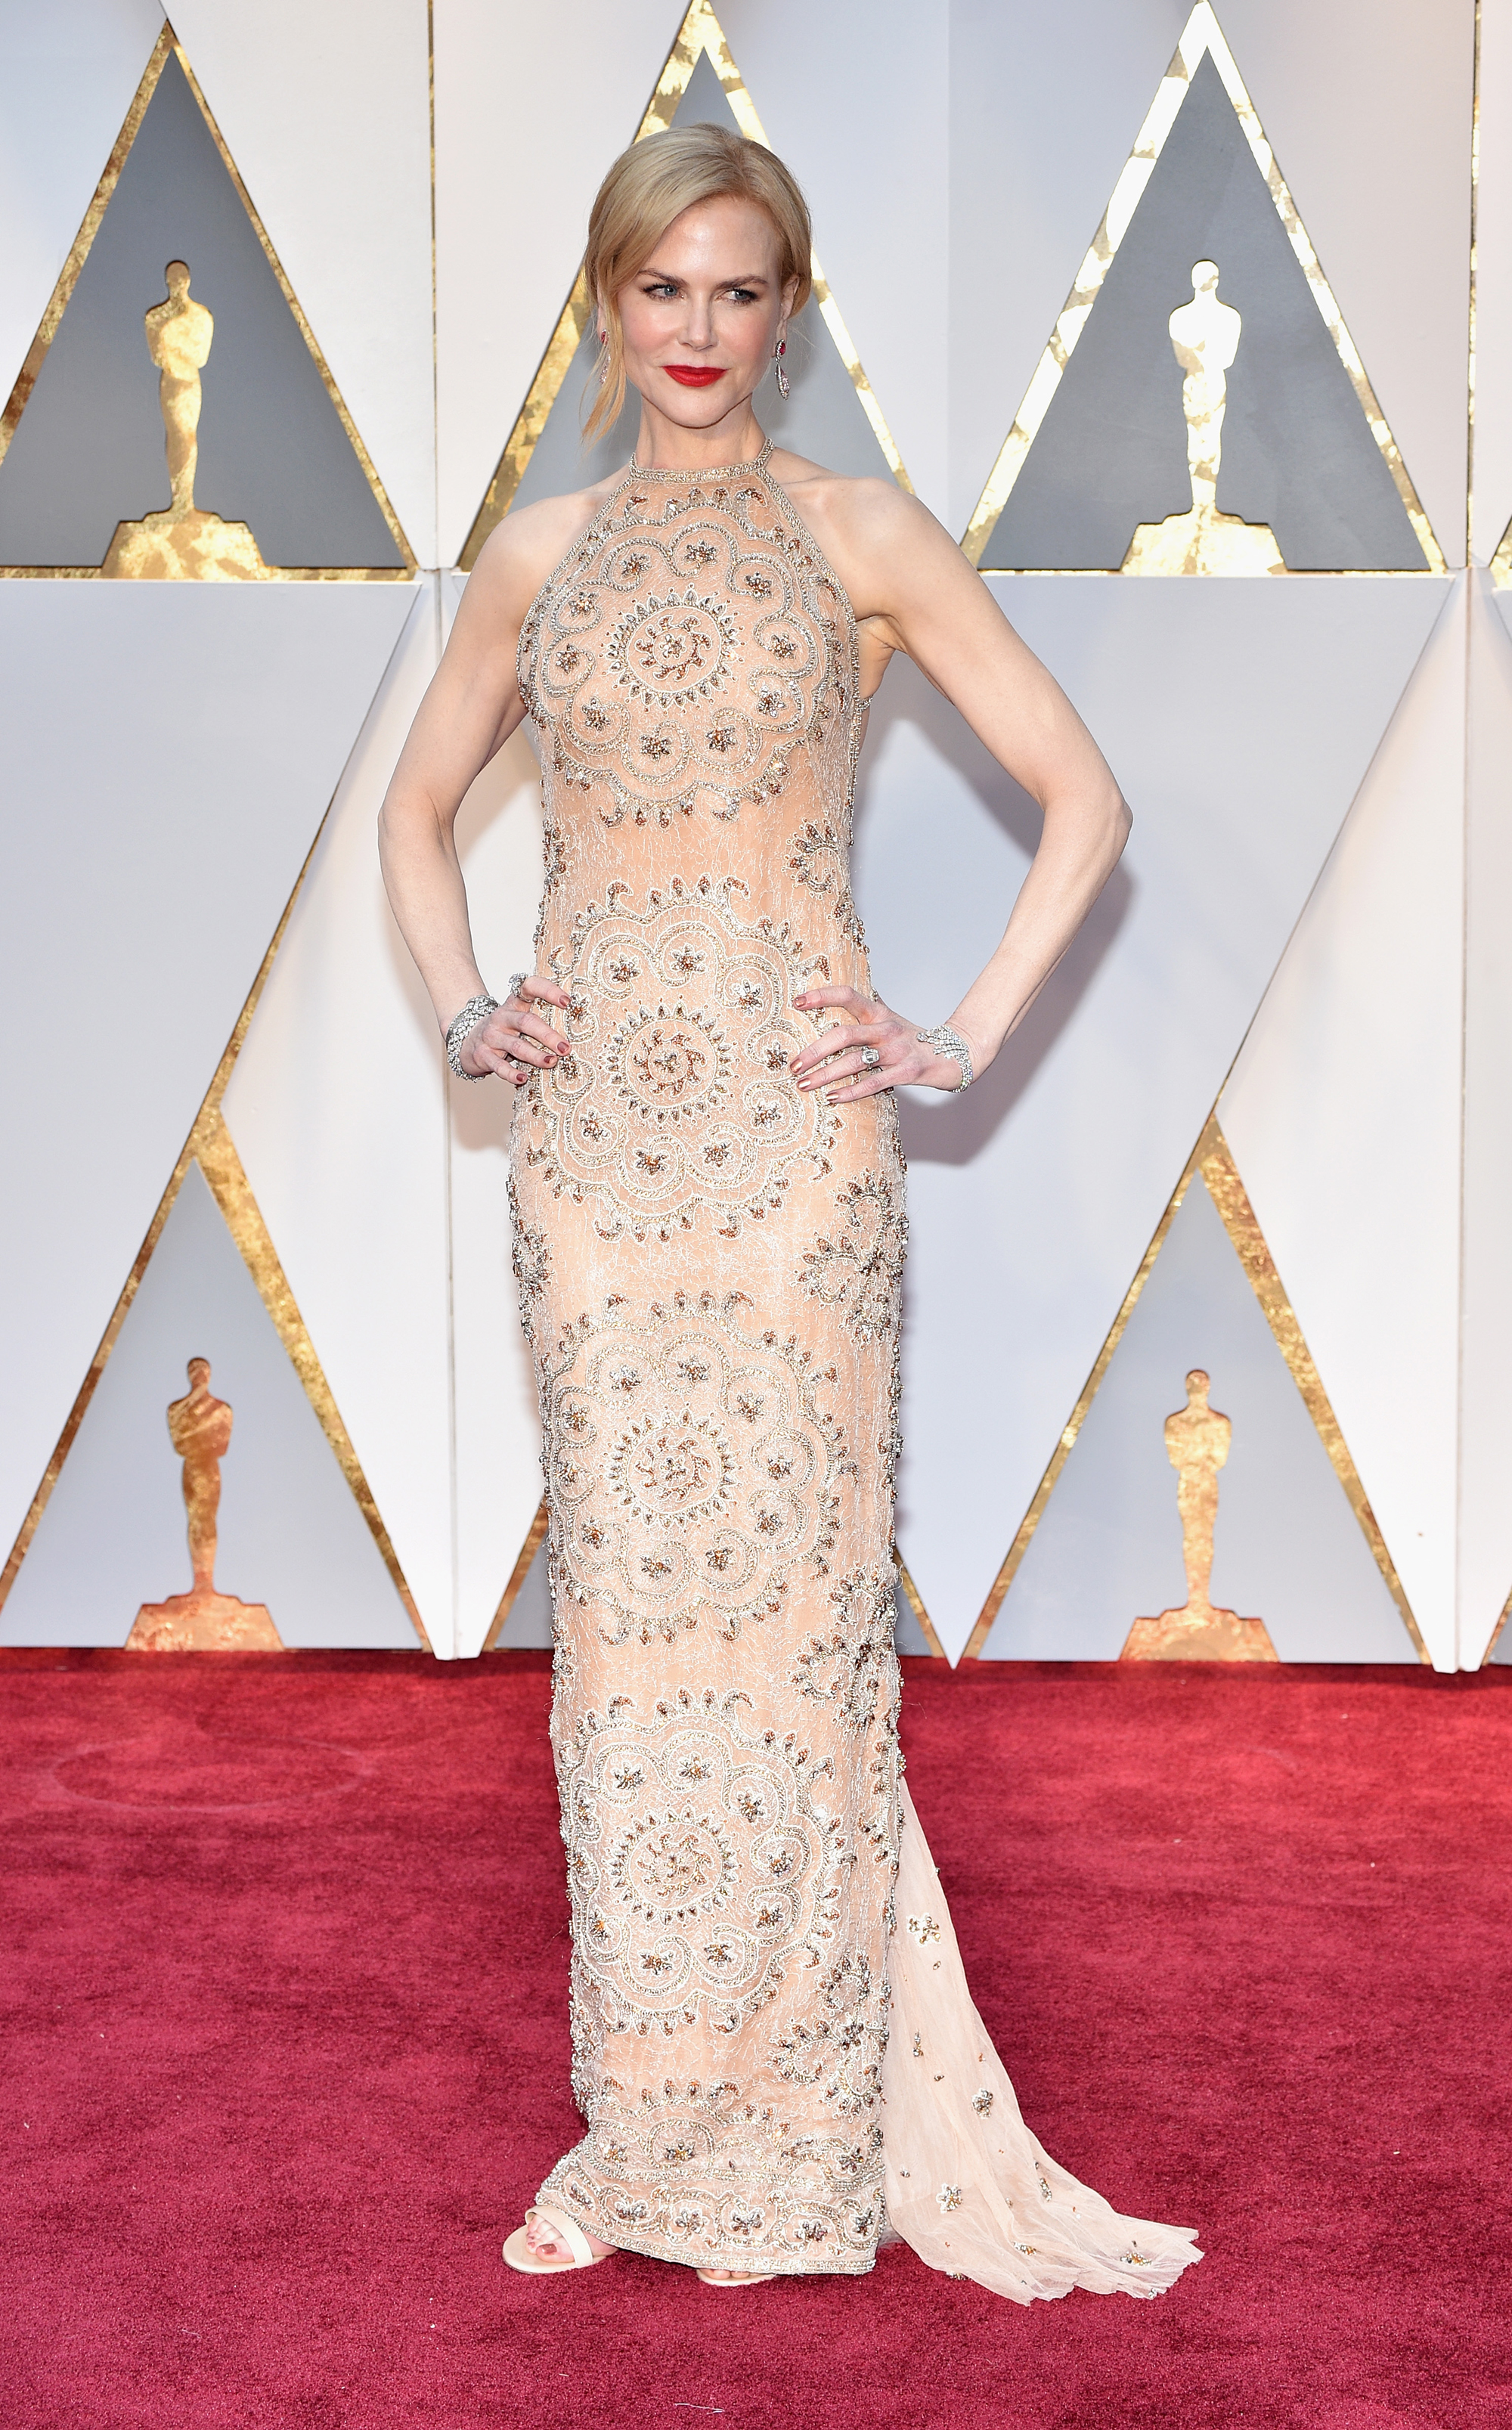 Nicole Kidman on the red carpet for the 89th Oscars, on Feb. 26, 2017 in Hollywood, Calif.